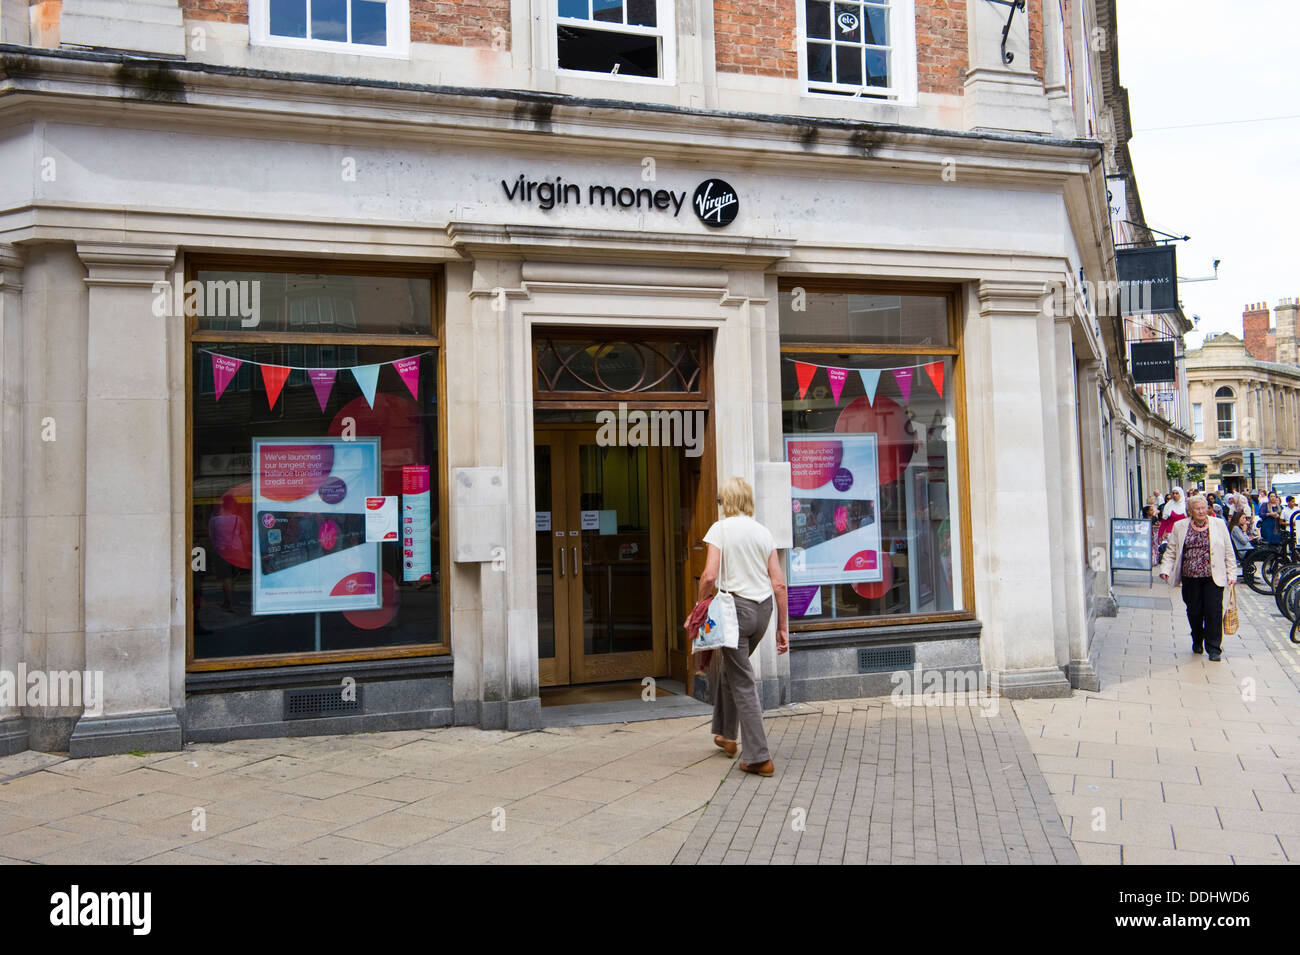 VIRGIN MONEY high street bank in the city centre of York North Yorkshire England UK - Stock Image